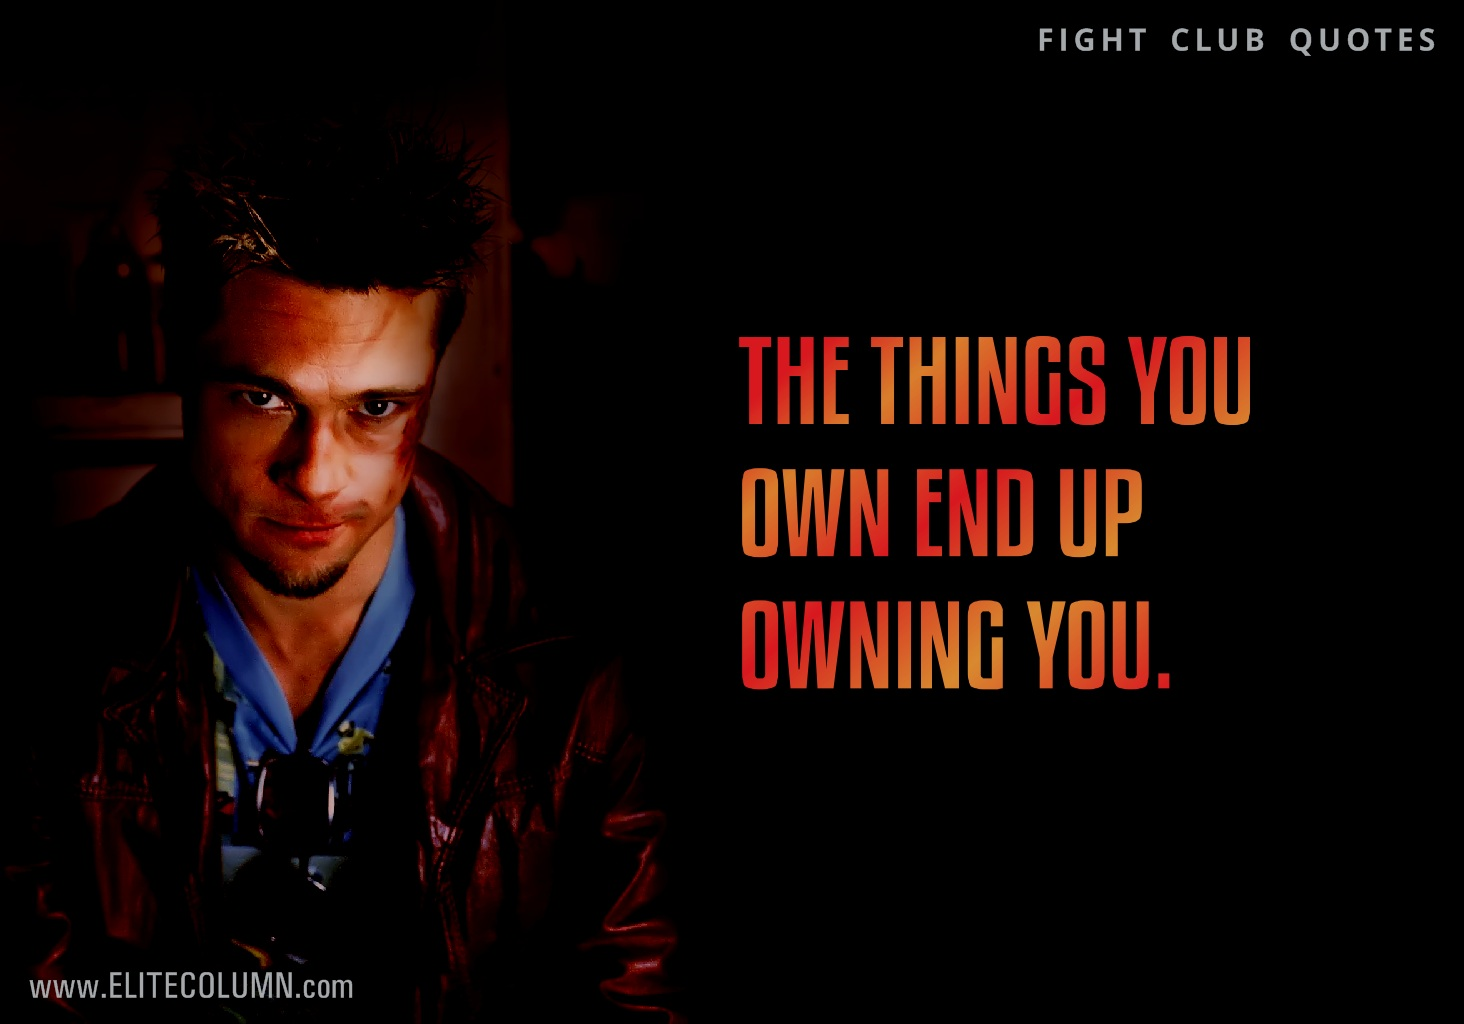 Fight Club Quotes 5